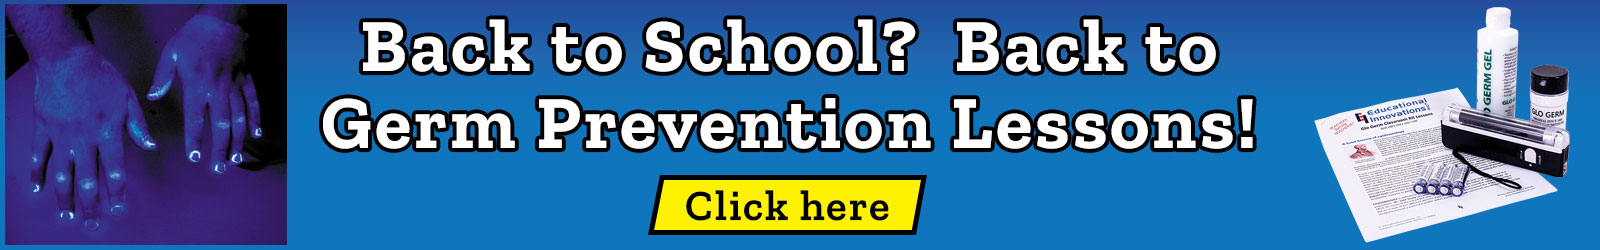 Back to school? Back to germ prevention lessons